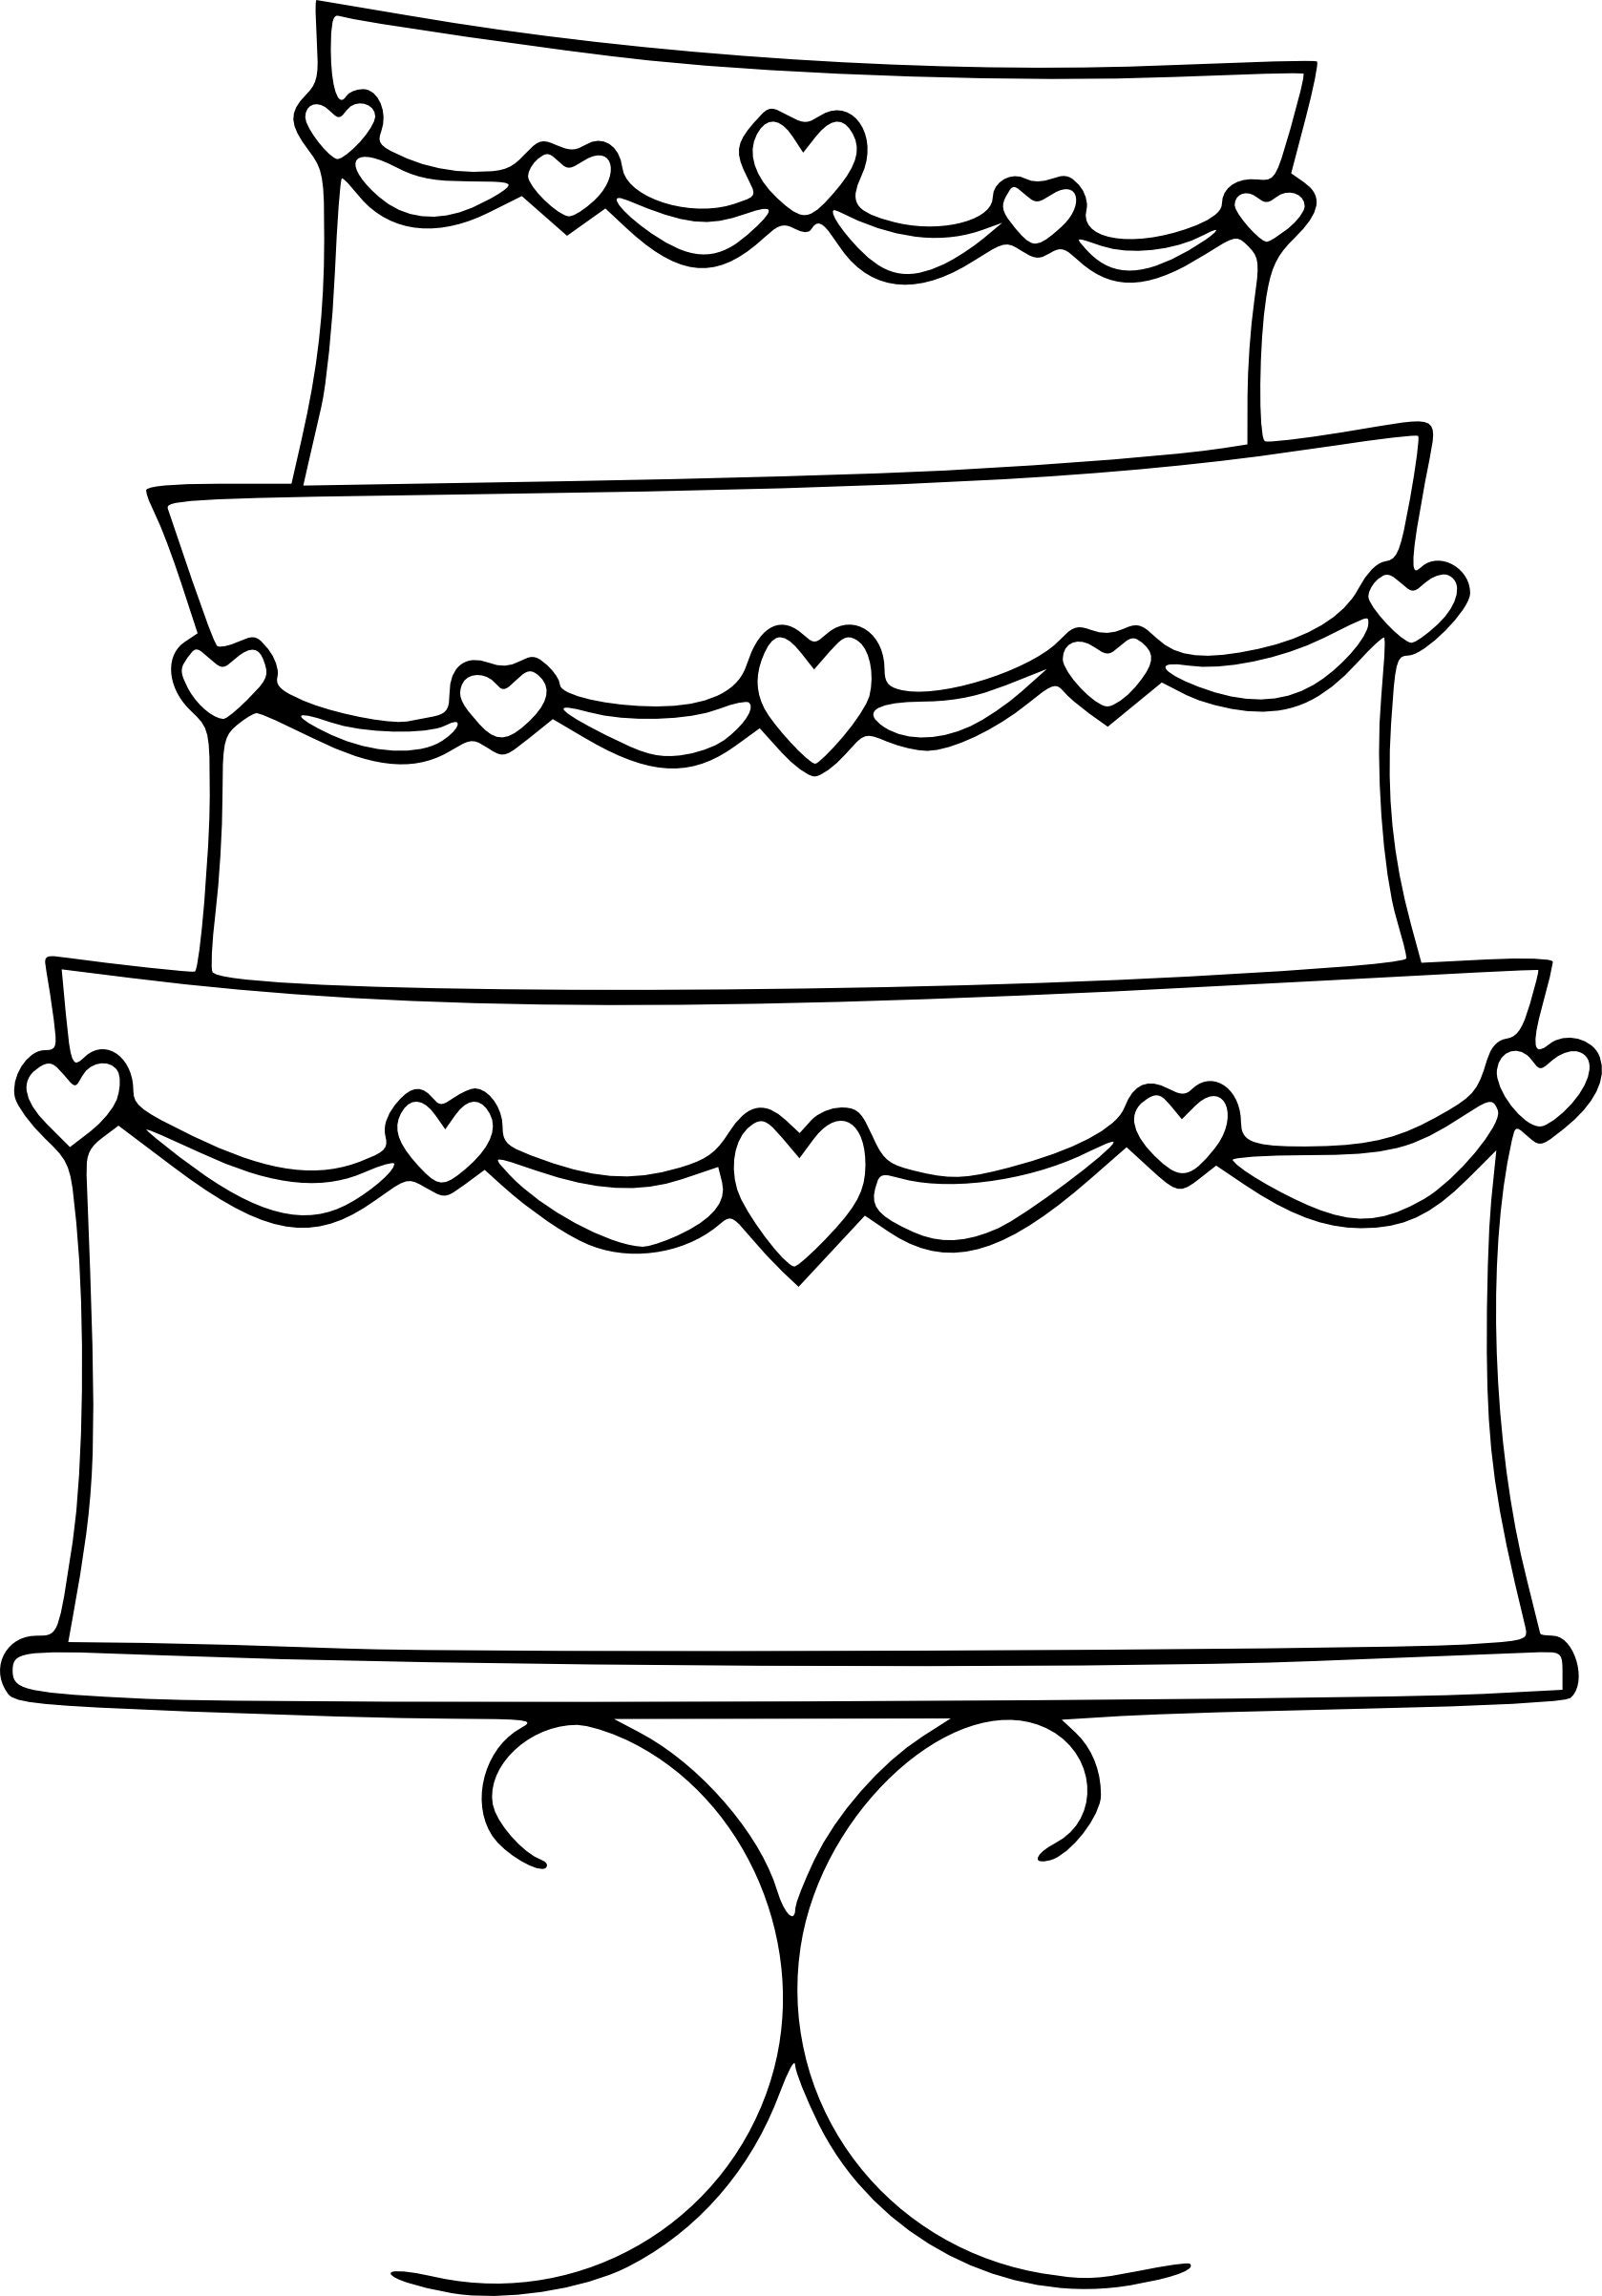 Simple Wedding Cake Clip Artwedding Gallery Wedding Gallery Wedding Coloring Pages Cake Drawing Digital Stamps